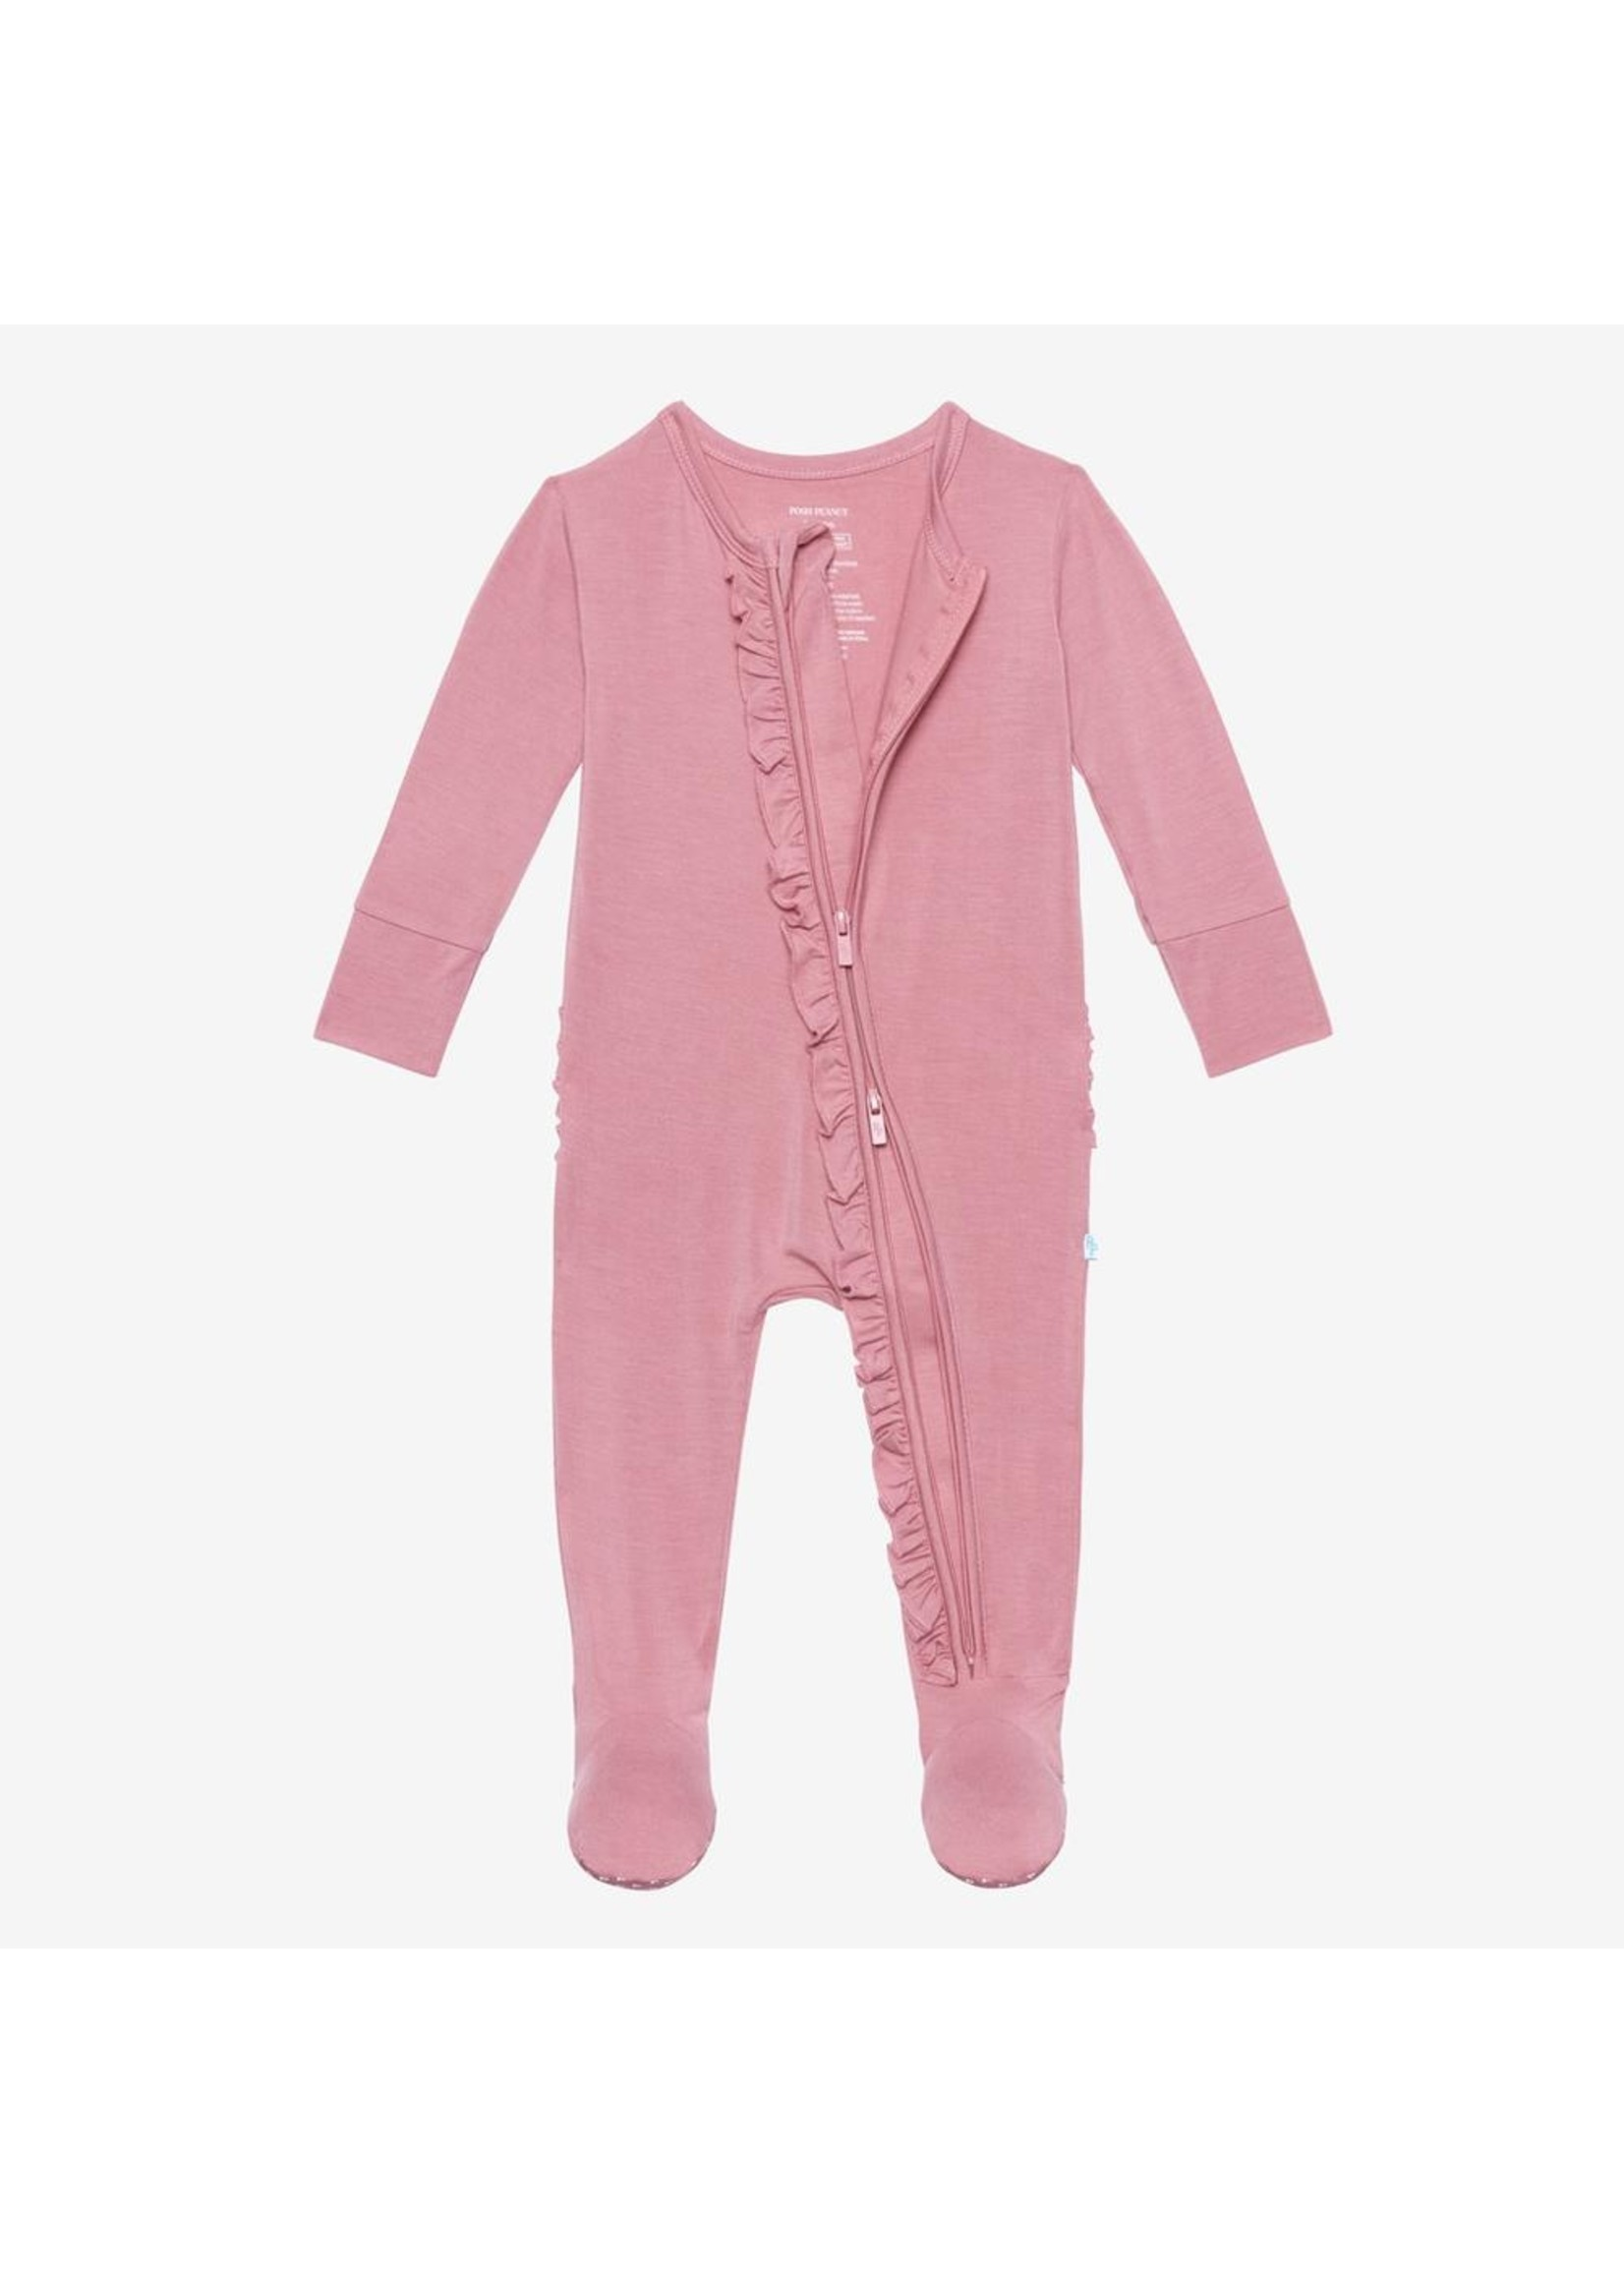 posh peanut Dusty Rose - Ruffled Footie Zippered One Piece